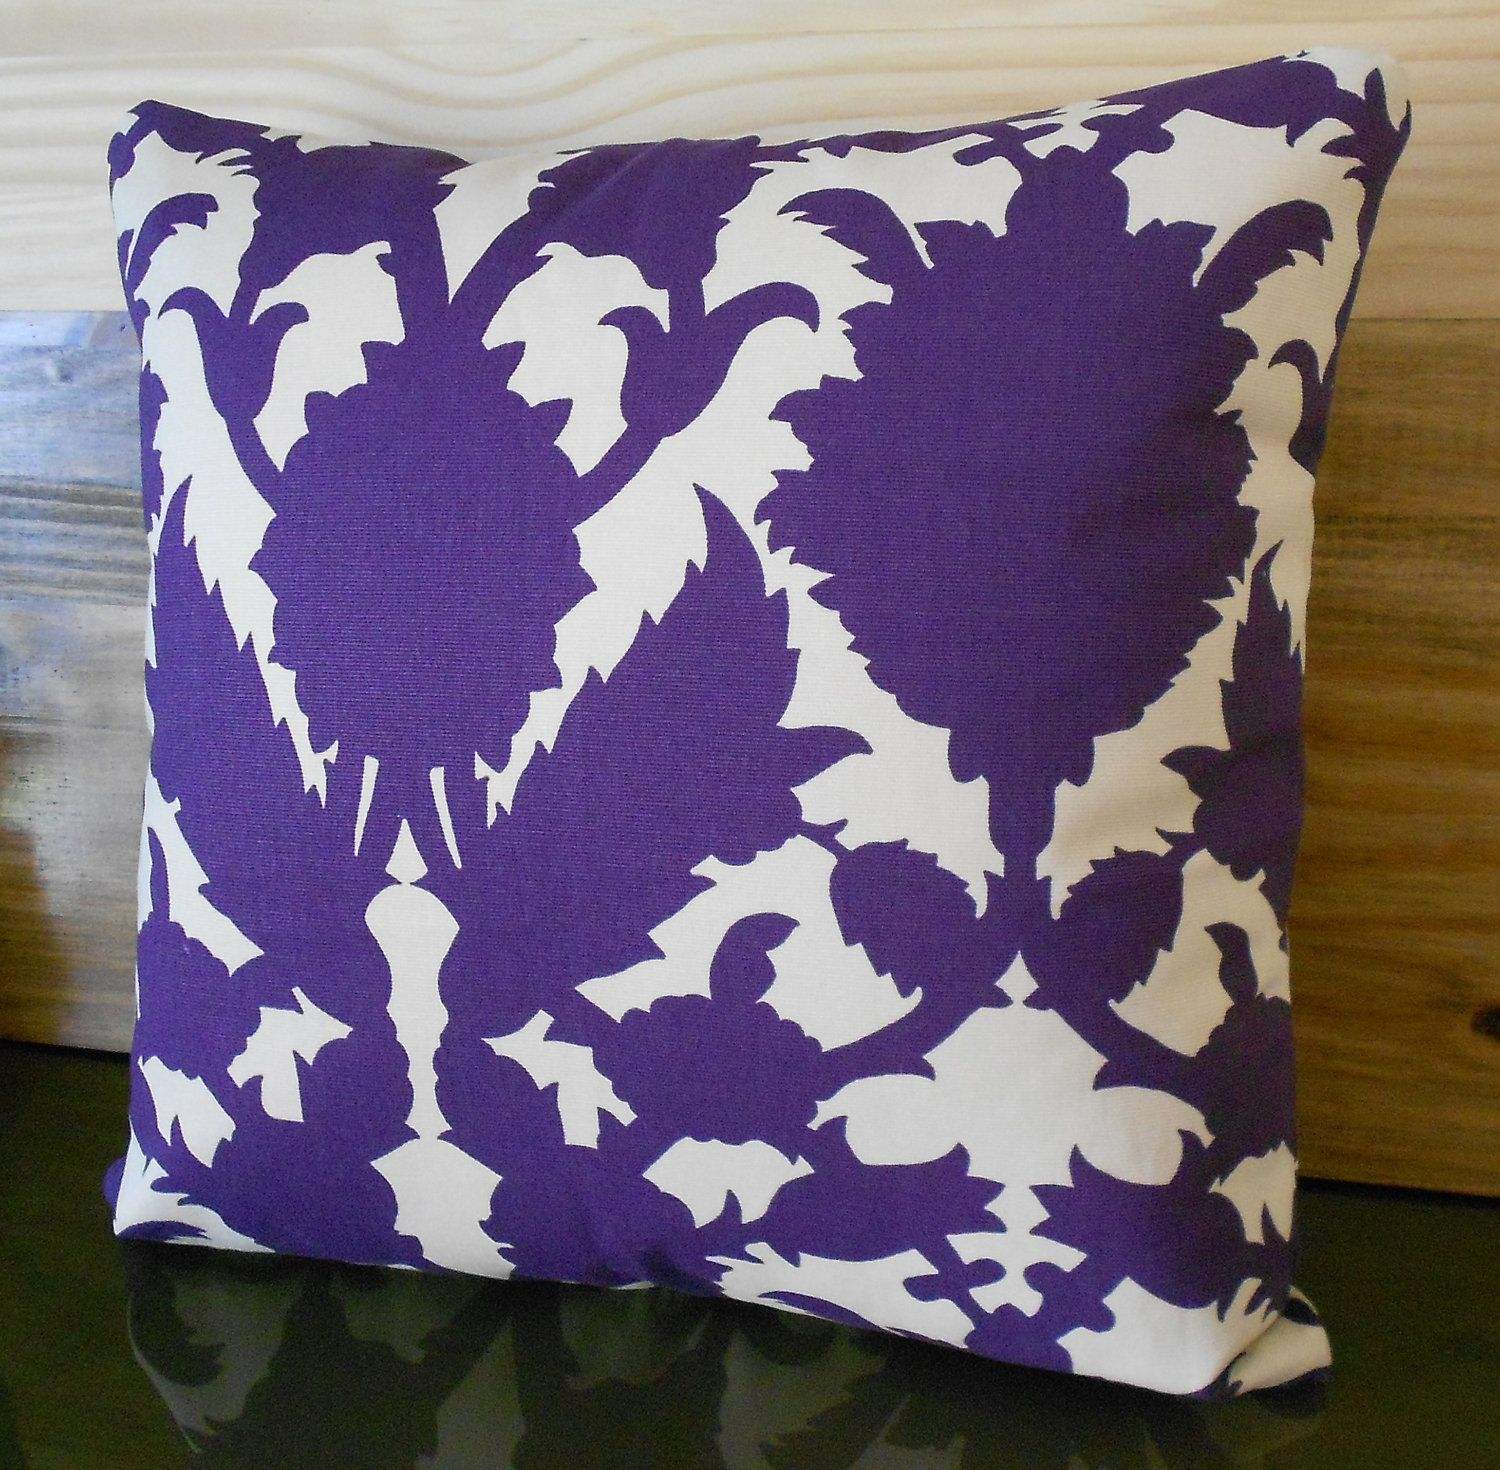 Bedroom Curtain Ideas Uk Bedroom Armchairs Violet Bedroom Colors Contemporary One Bedroom Apartment Design: The 25+ Best Purple Throw Pillows Ideas On Pinterest